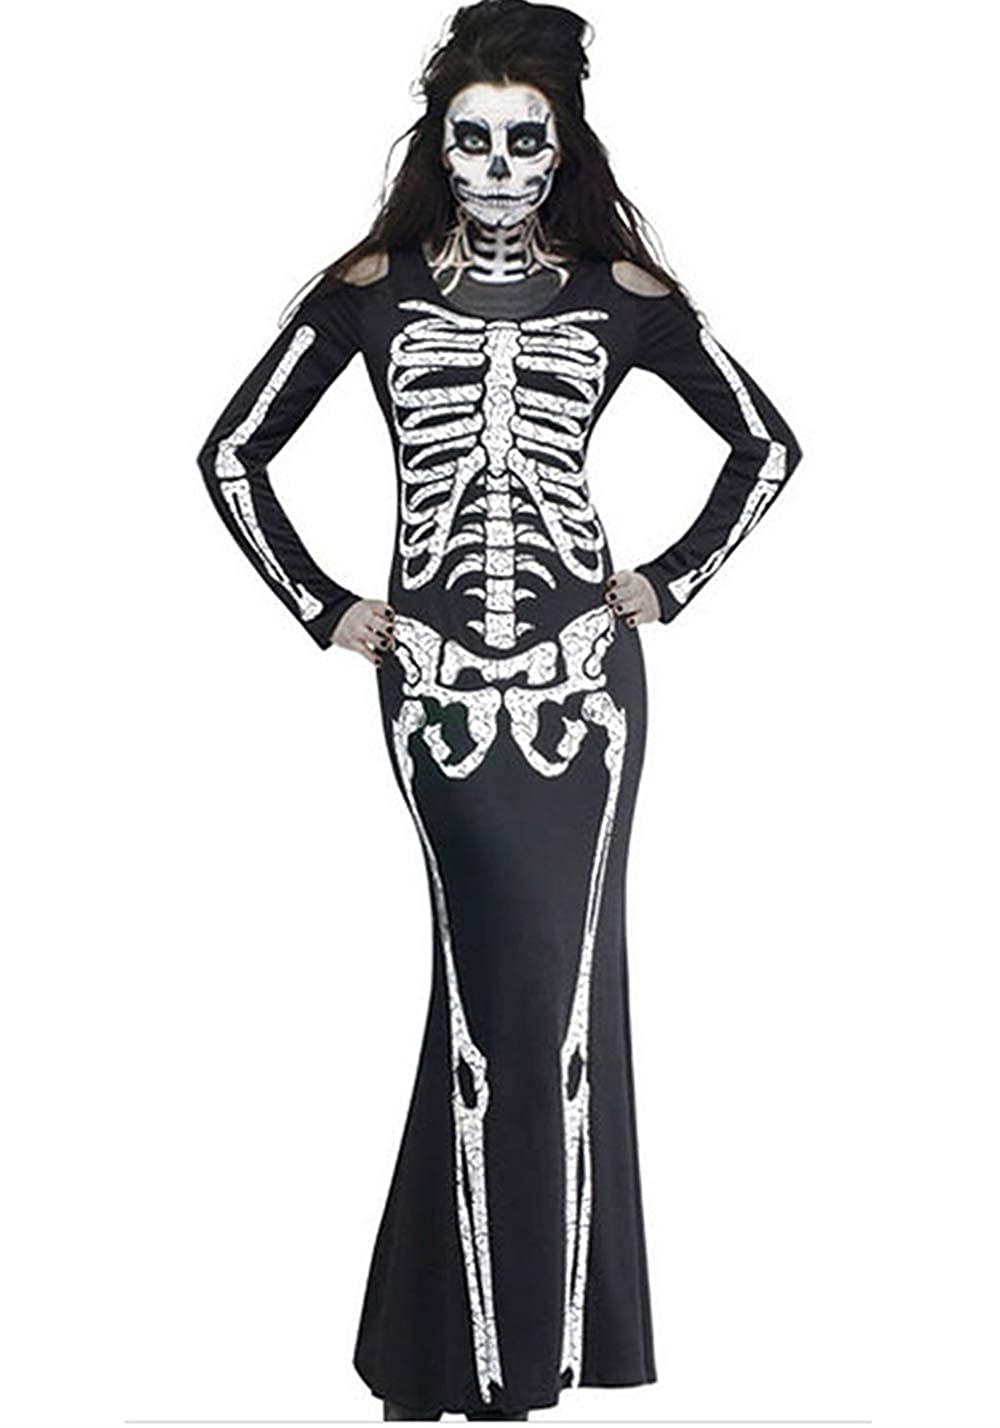 Youthwell Women's Long Skeleton Dress Adult Halloween Costume HLW0041